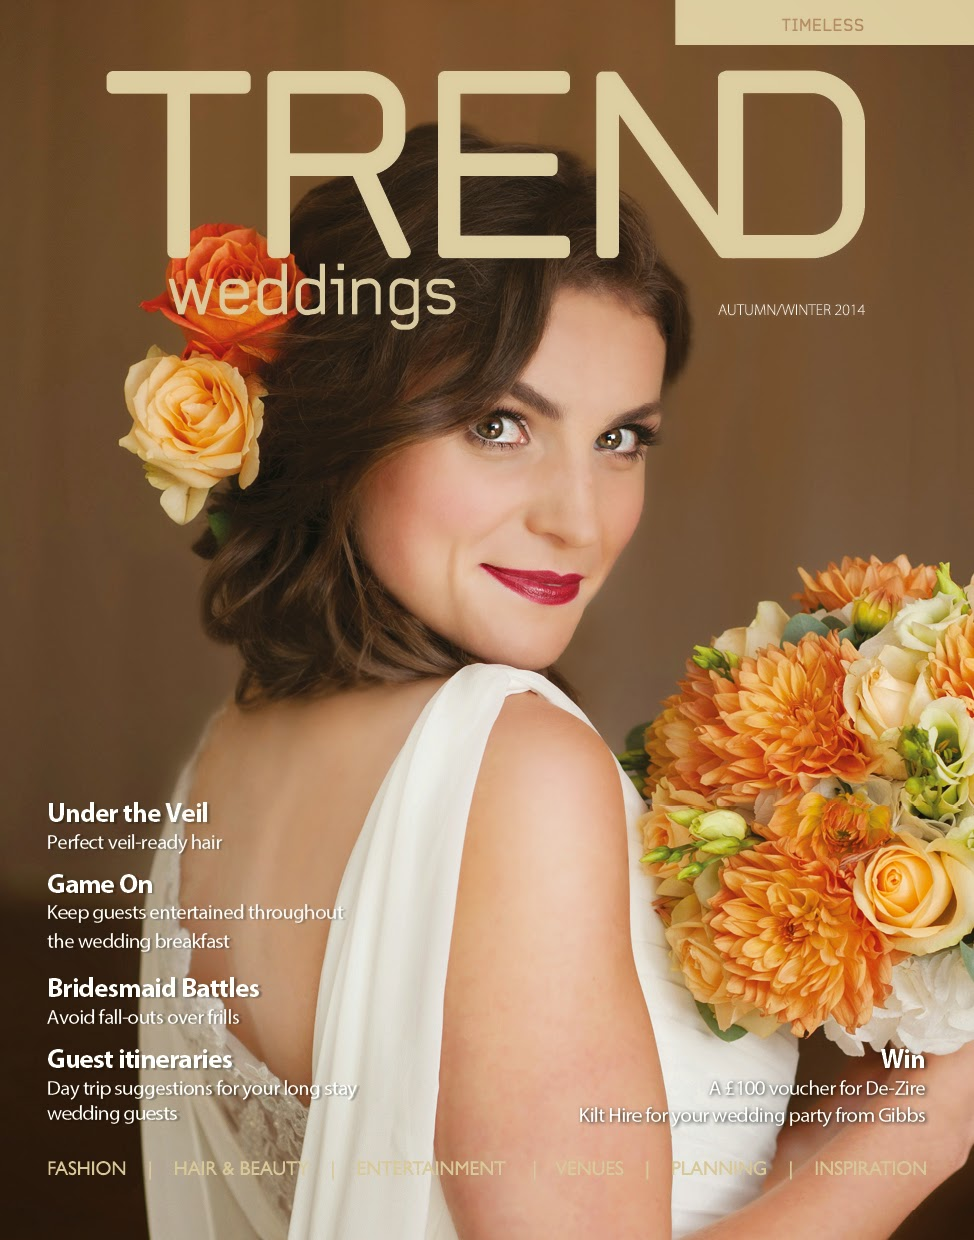 Trend Wedding magazine front cover with model smiling holding a autumnal style bouquet